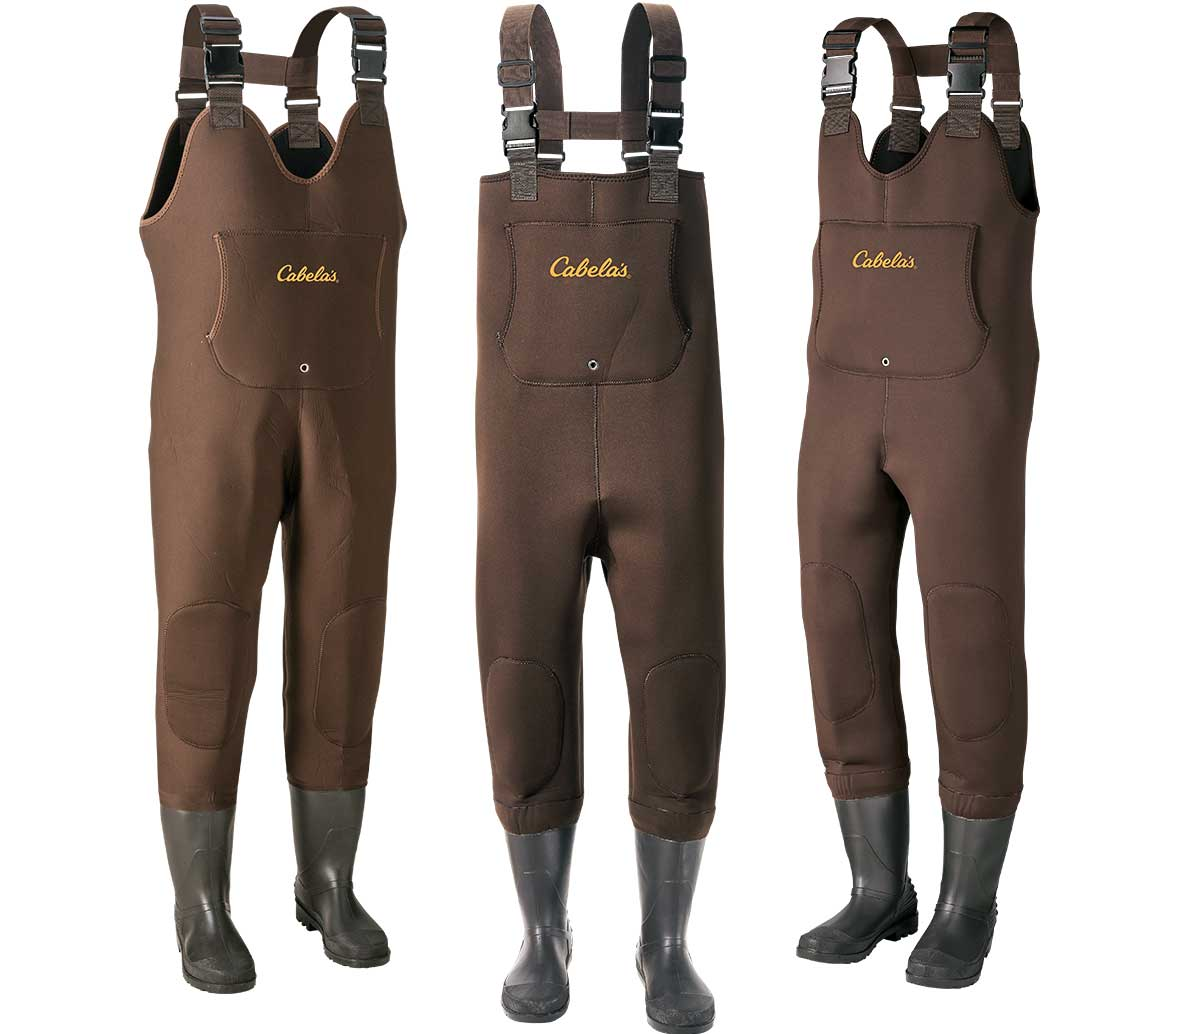 Go Fishing Together And Save 25% On Waders For The Family